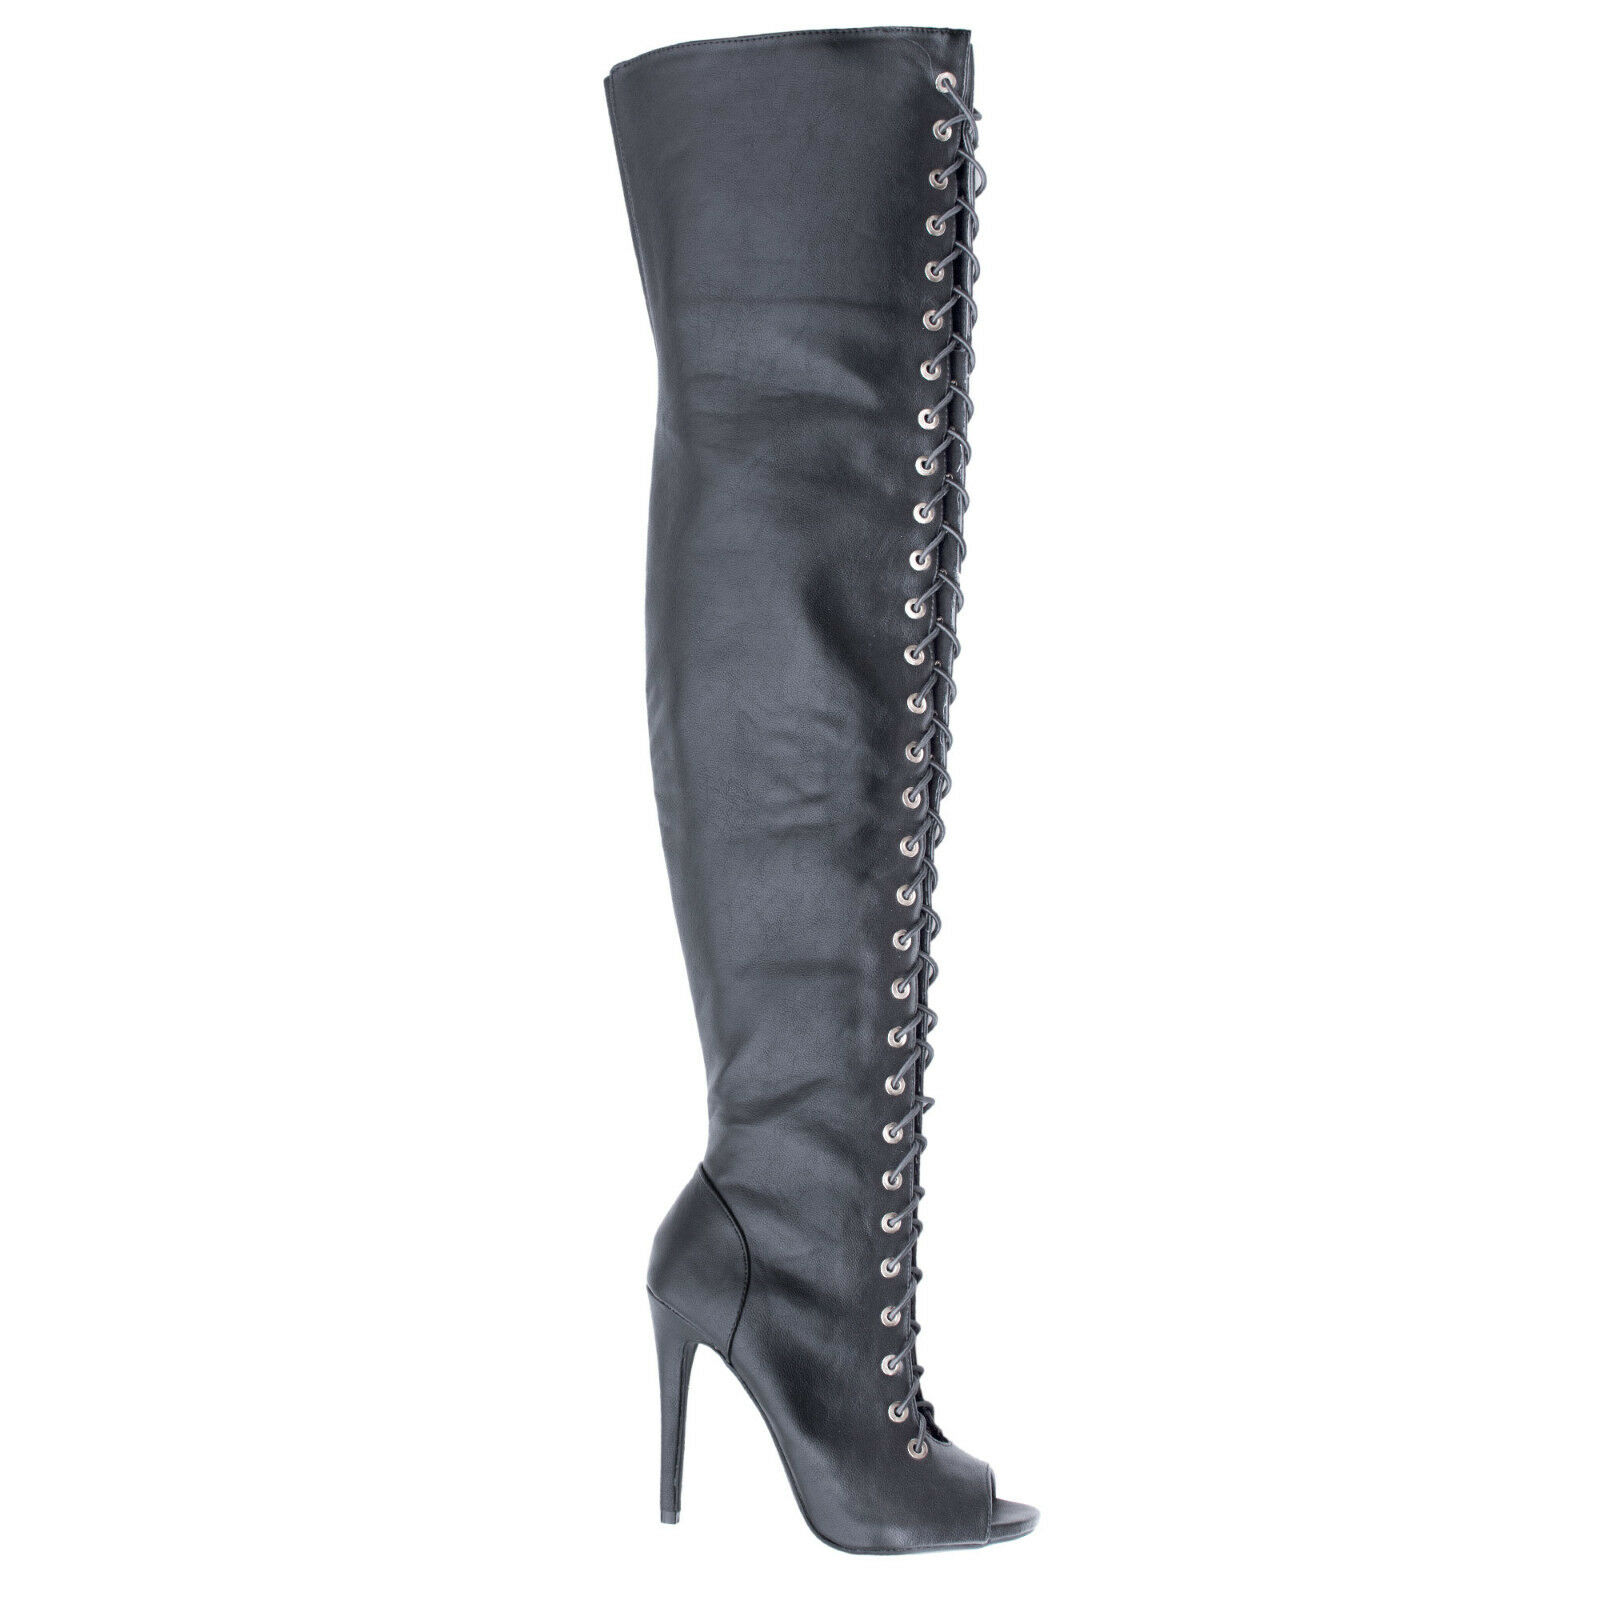 Shallow Thigh High Peep Toe Corset Elastic Lace Stiletto High Heel Boots